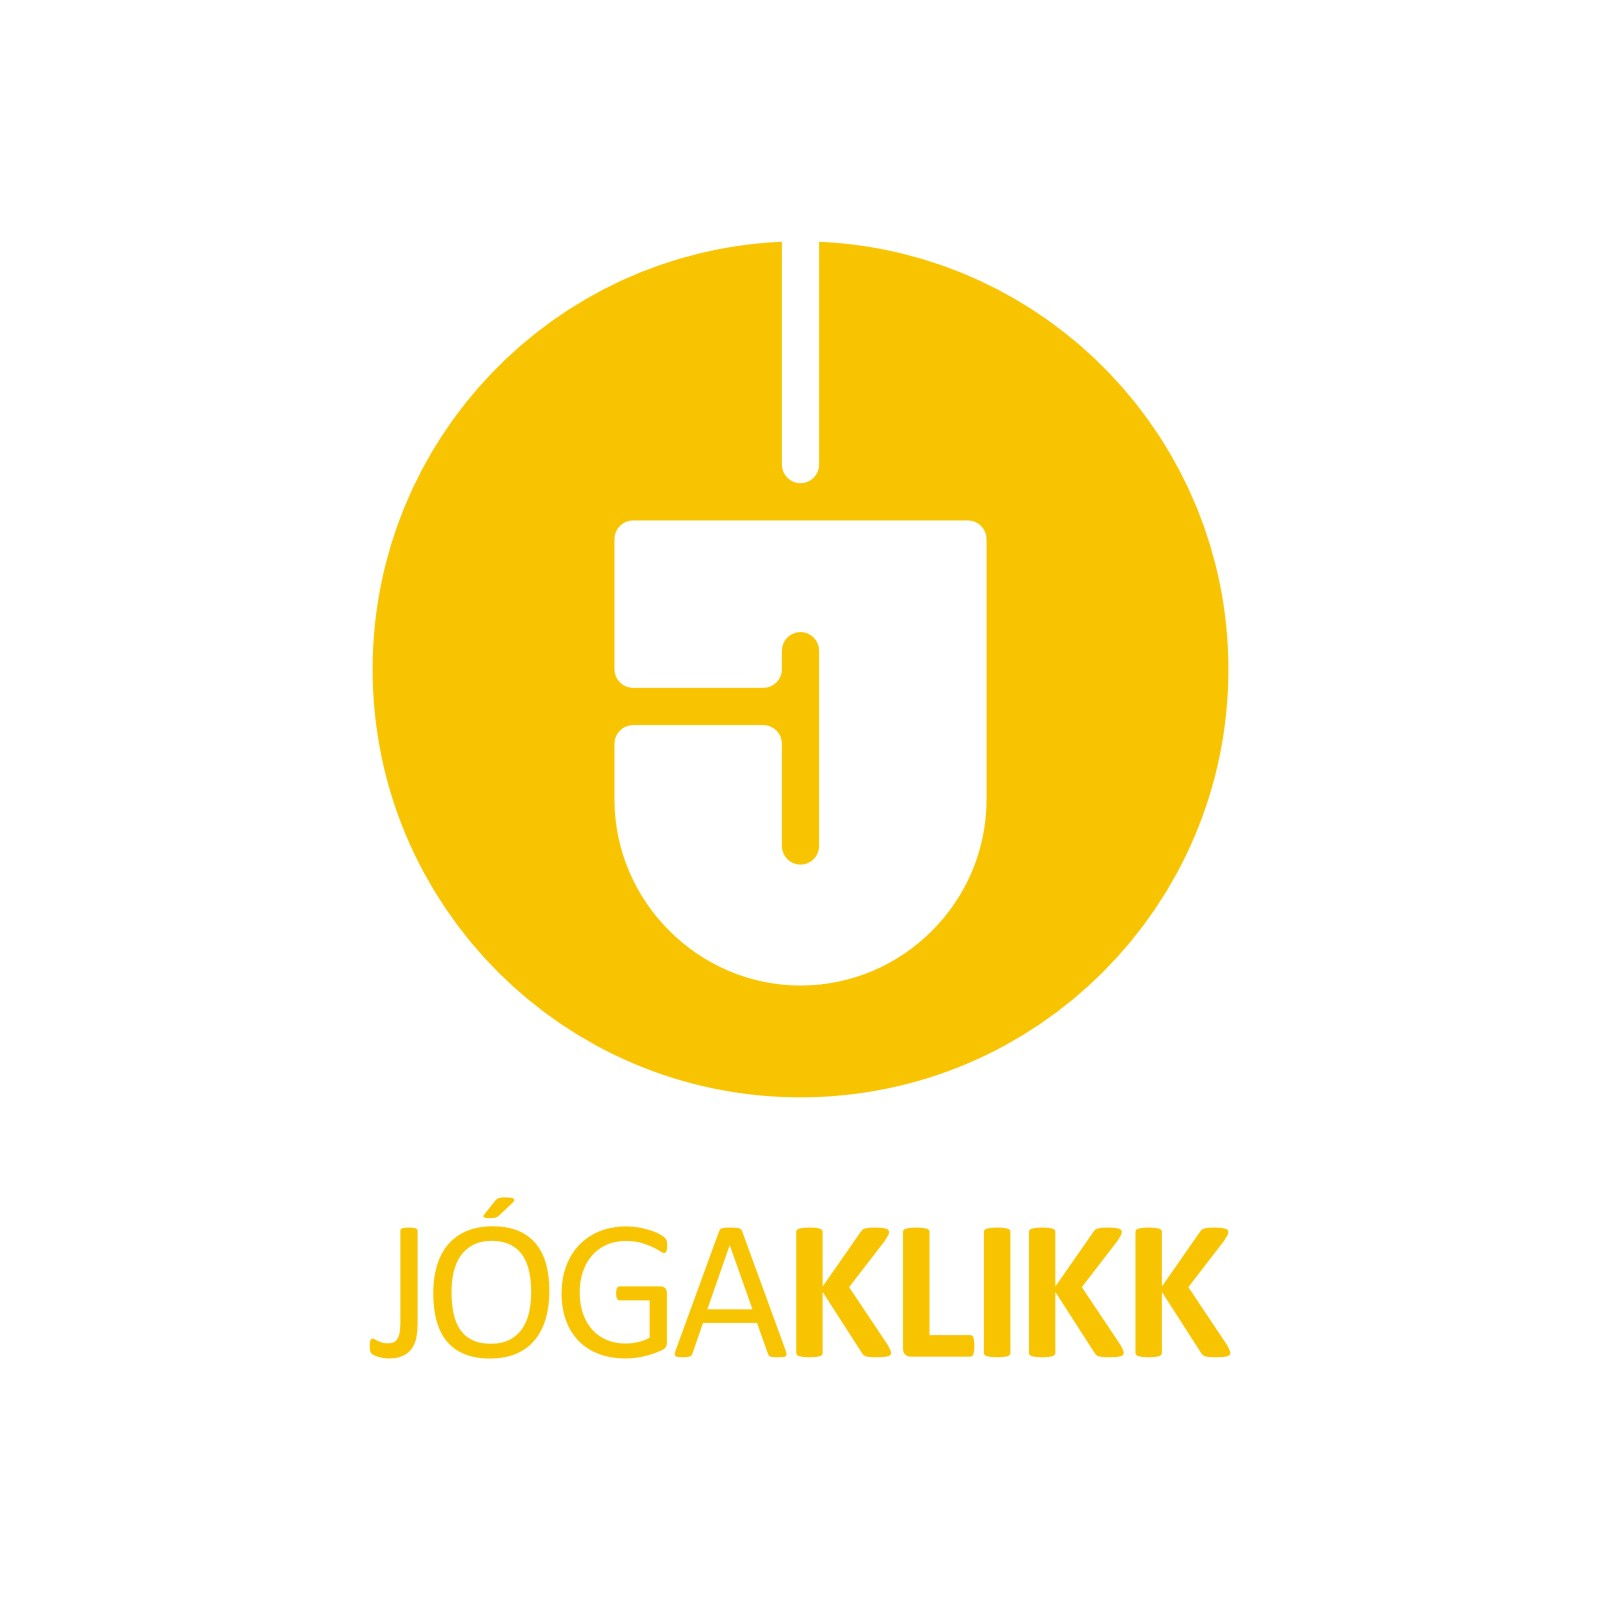 Jógaklikk - online marketingreferencia kép